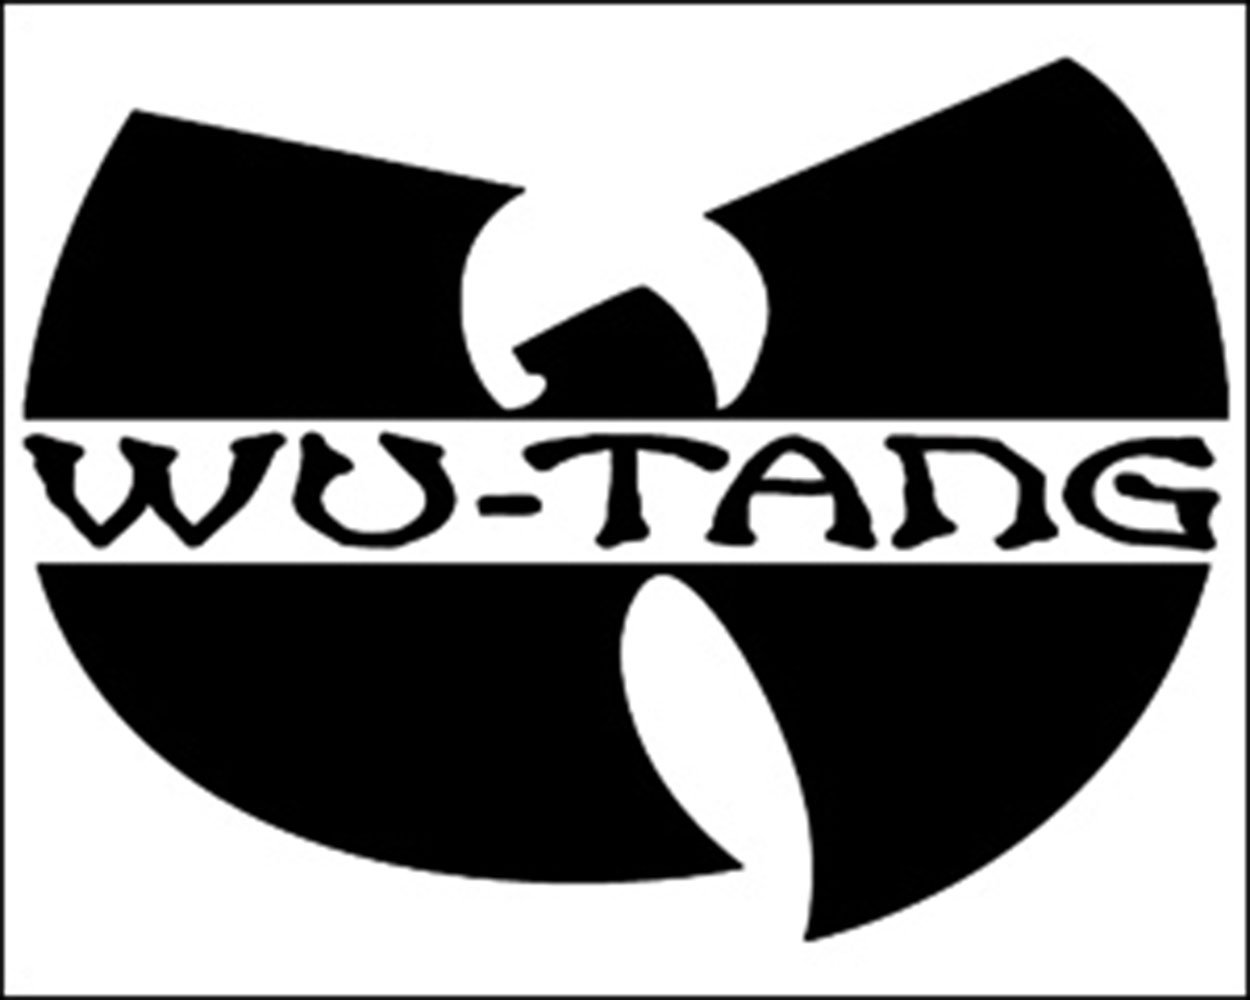 WU-TANG Clan Logo, Official Original Licensed Artwork, 4.7' x 0.7' - Sticker Aufkleber DECAL 4.7 x 0.7 - Sticker Aufkleber DECAL Officially Licensed & Trademarked Products S-5715